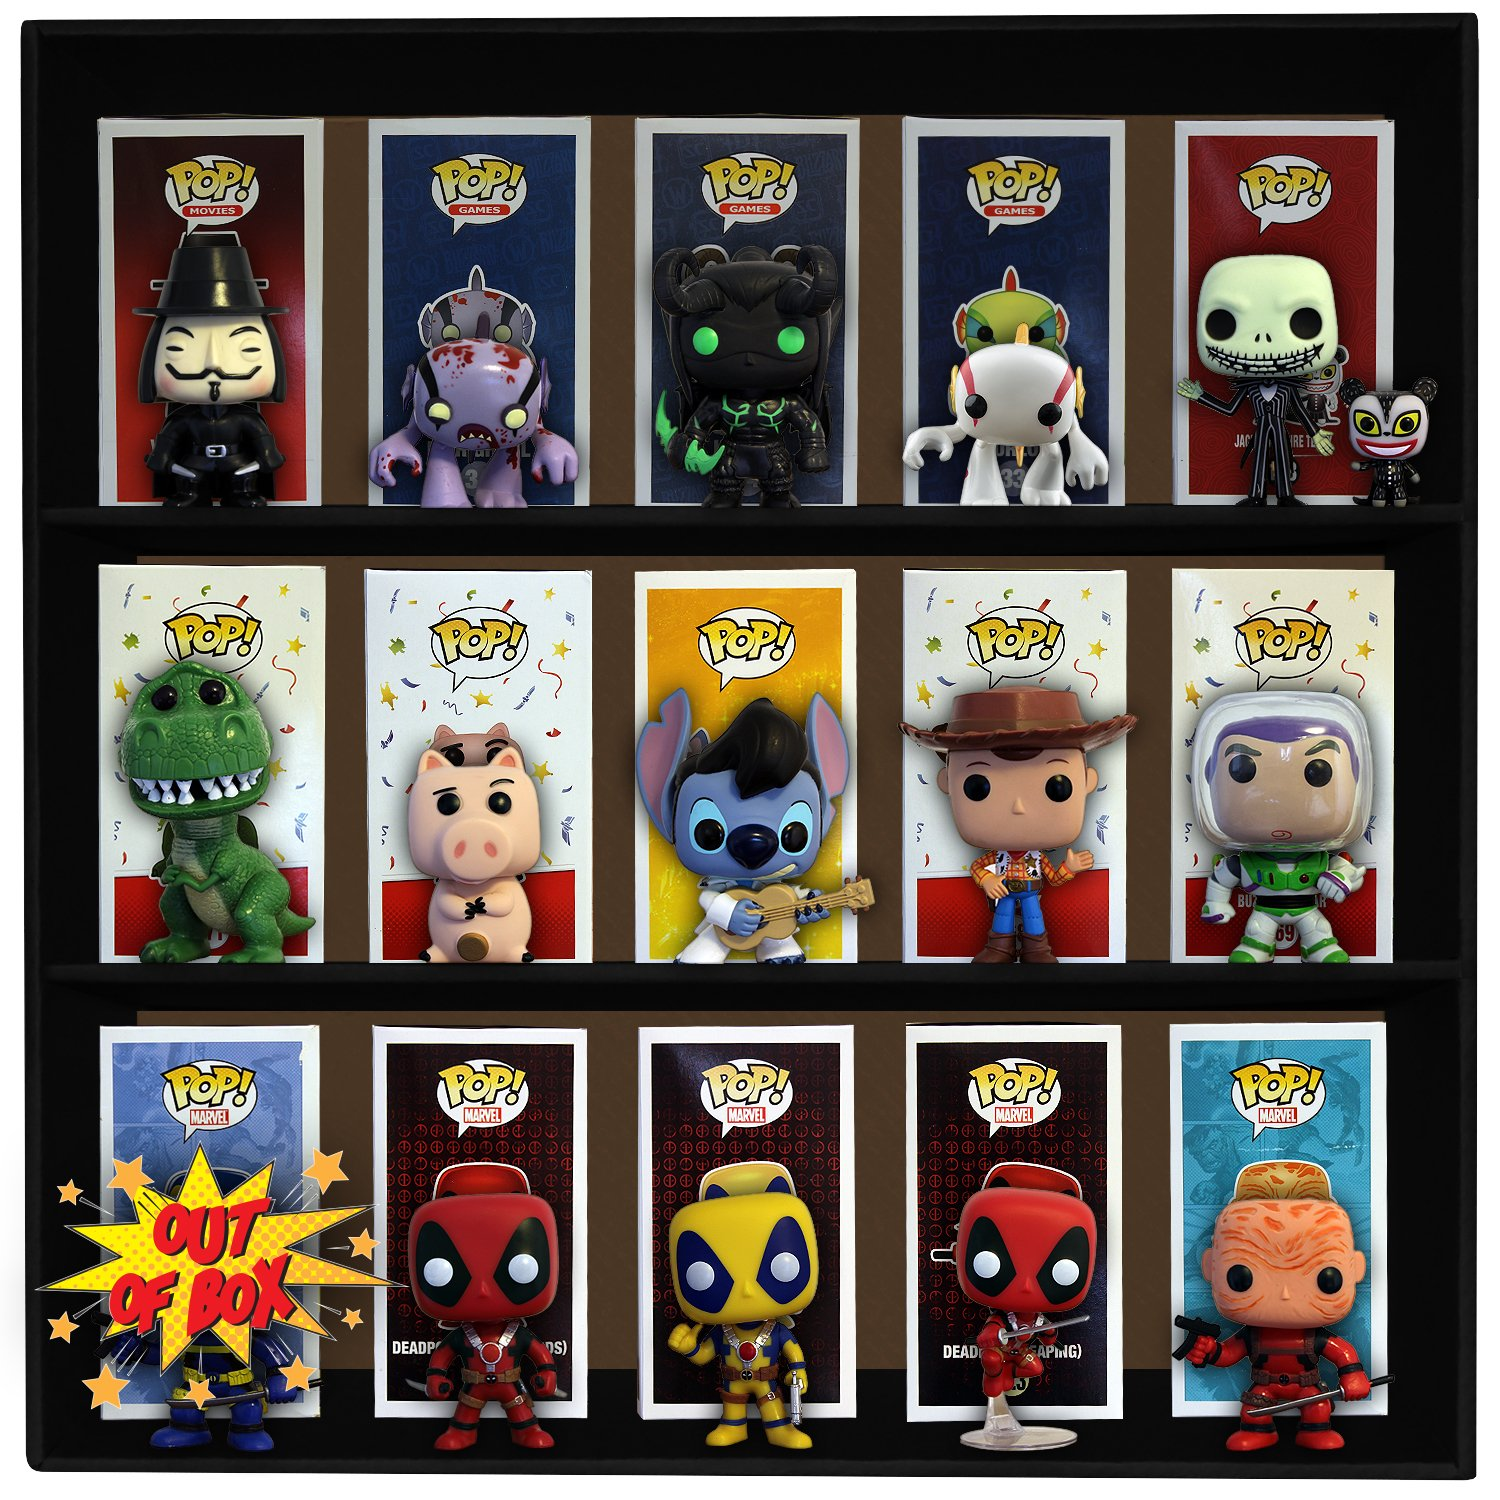 1 Display Geek Stackable Toy Shelf for 4 in. Vinyl Collectibles with 3 Backdrop Inserts, Black Corrugated Cardboard by Display Geek, Inc. (Image #6)